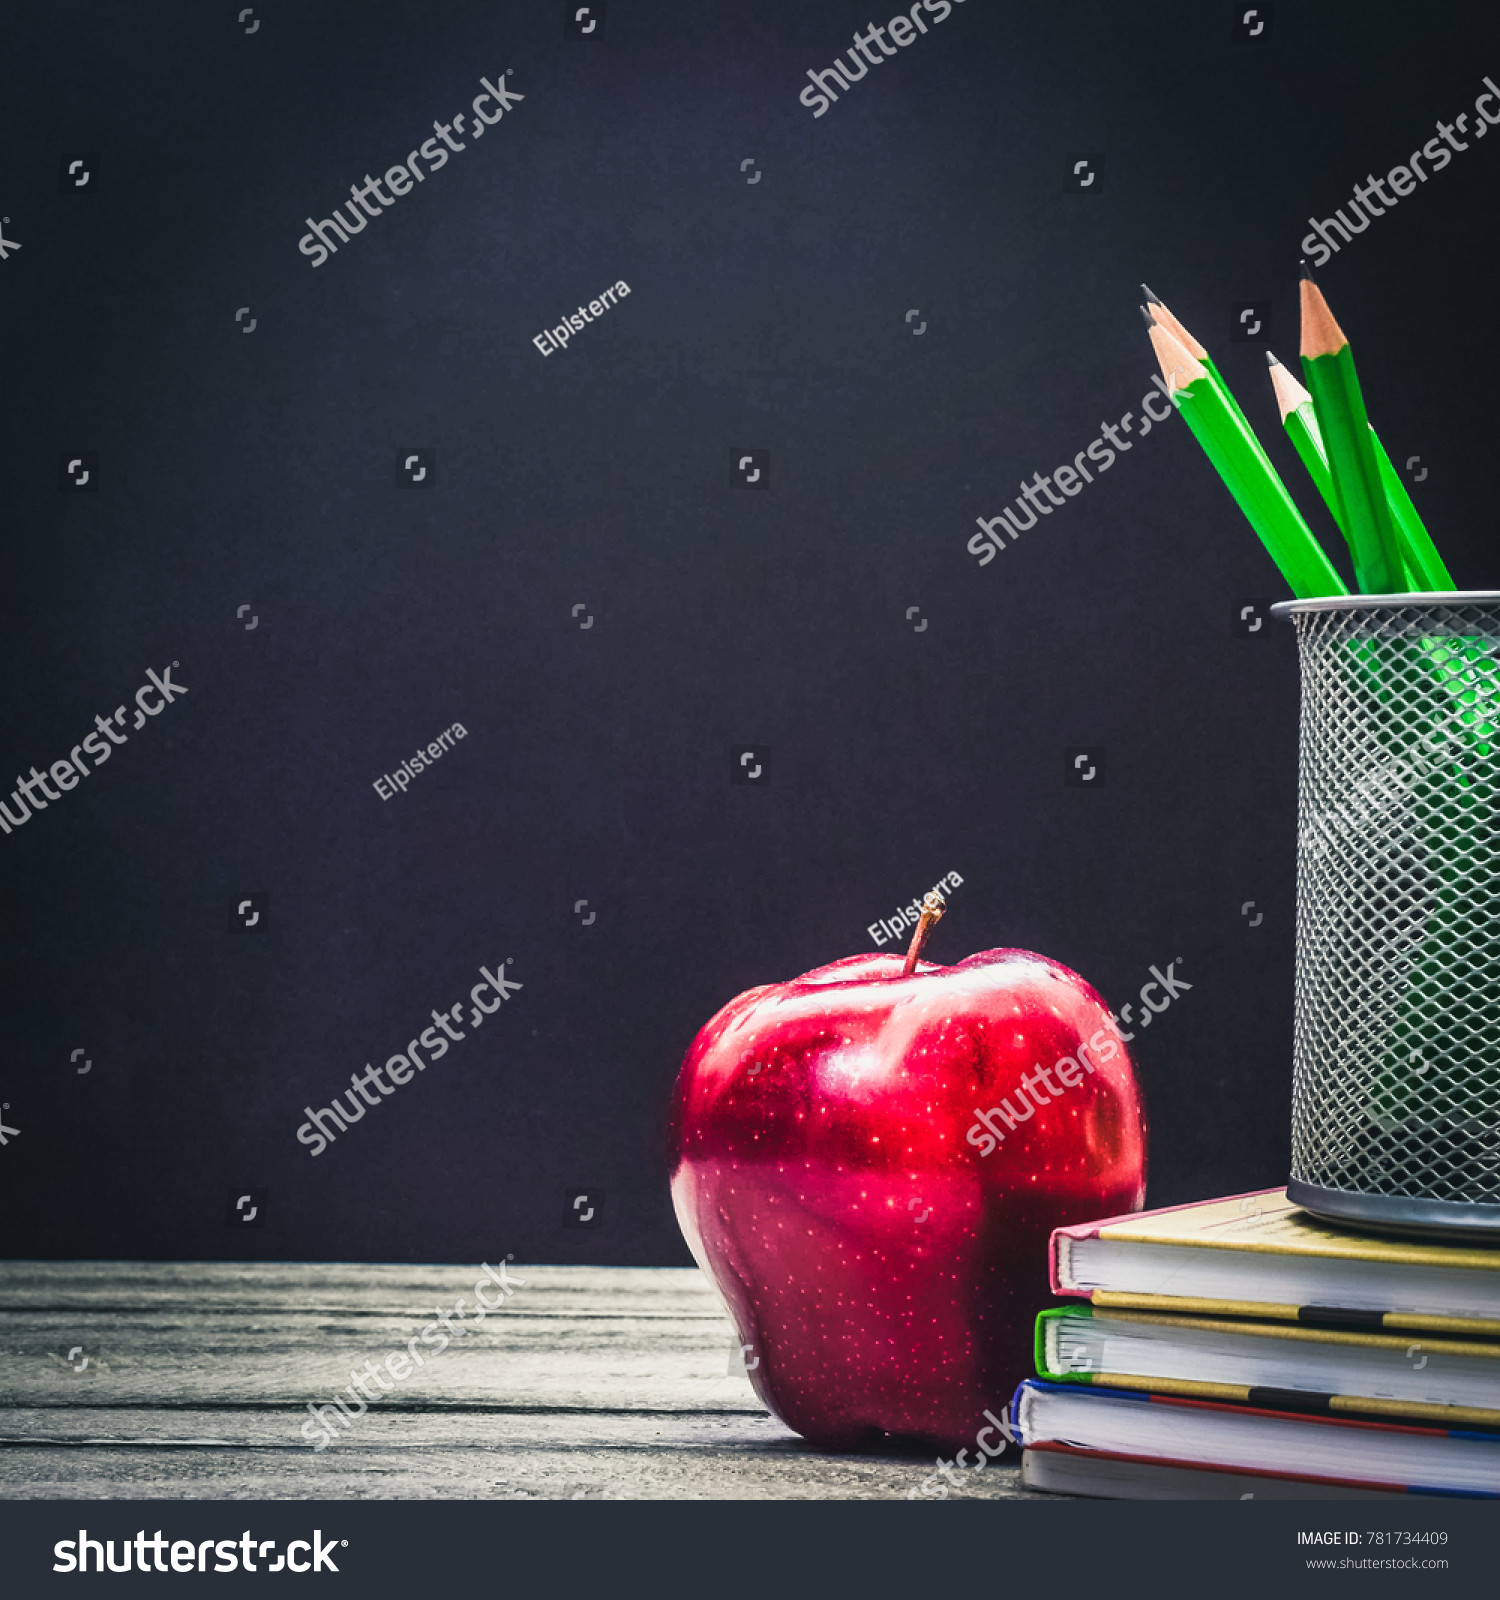 Back School Education Concept Classroom Apple Stock Photo 781734409